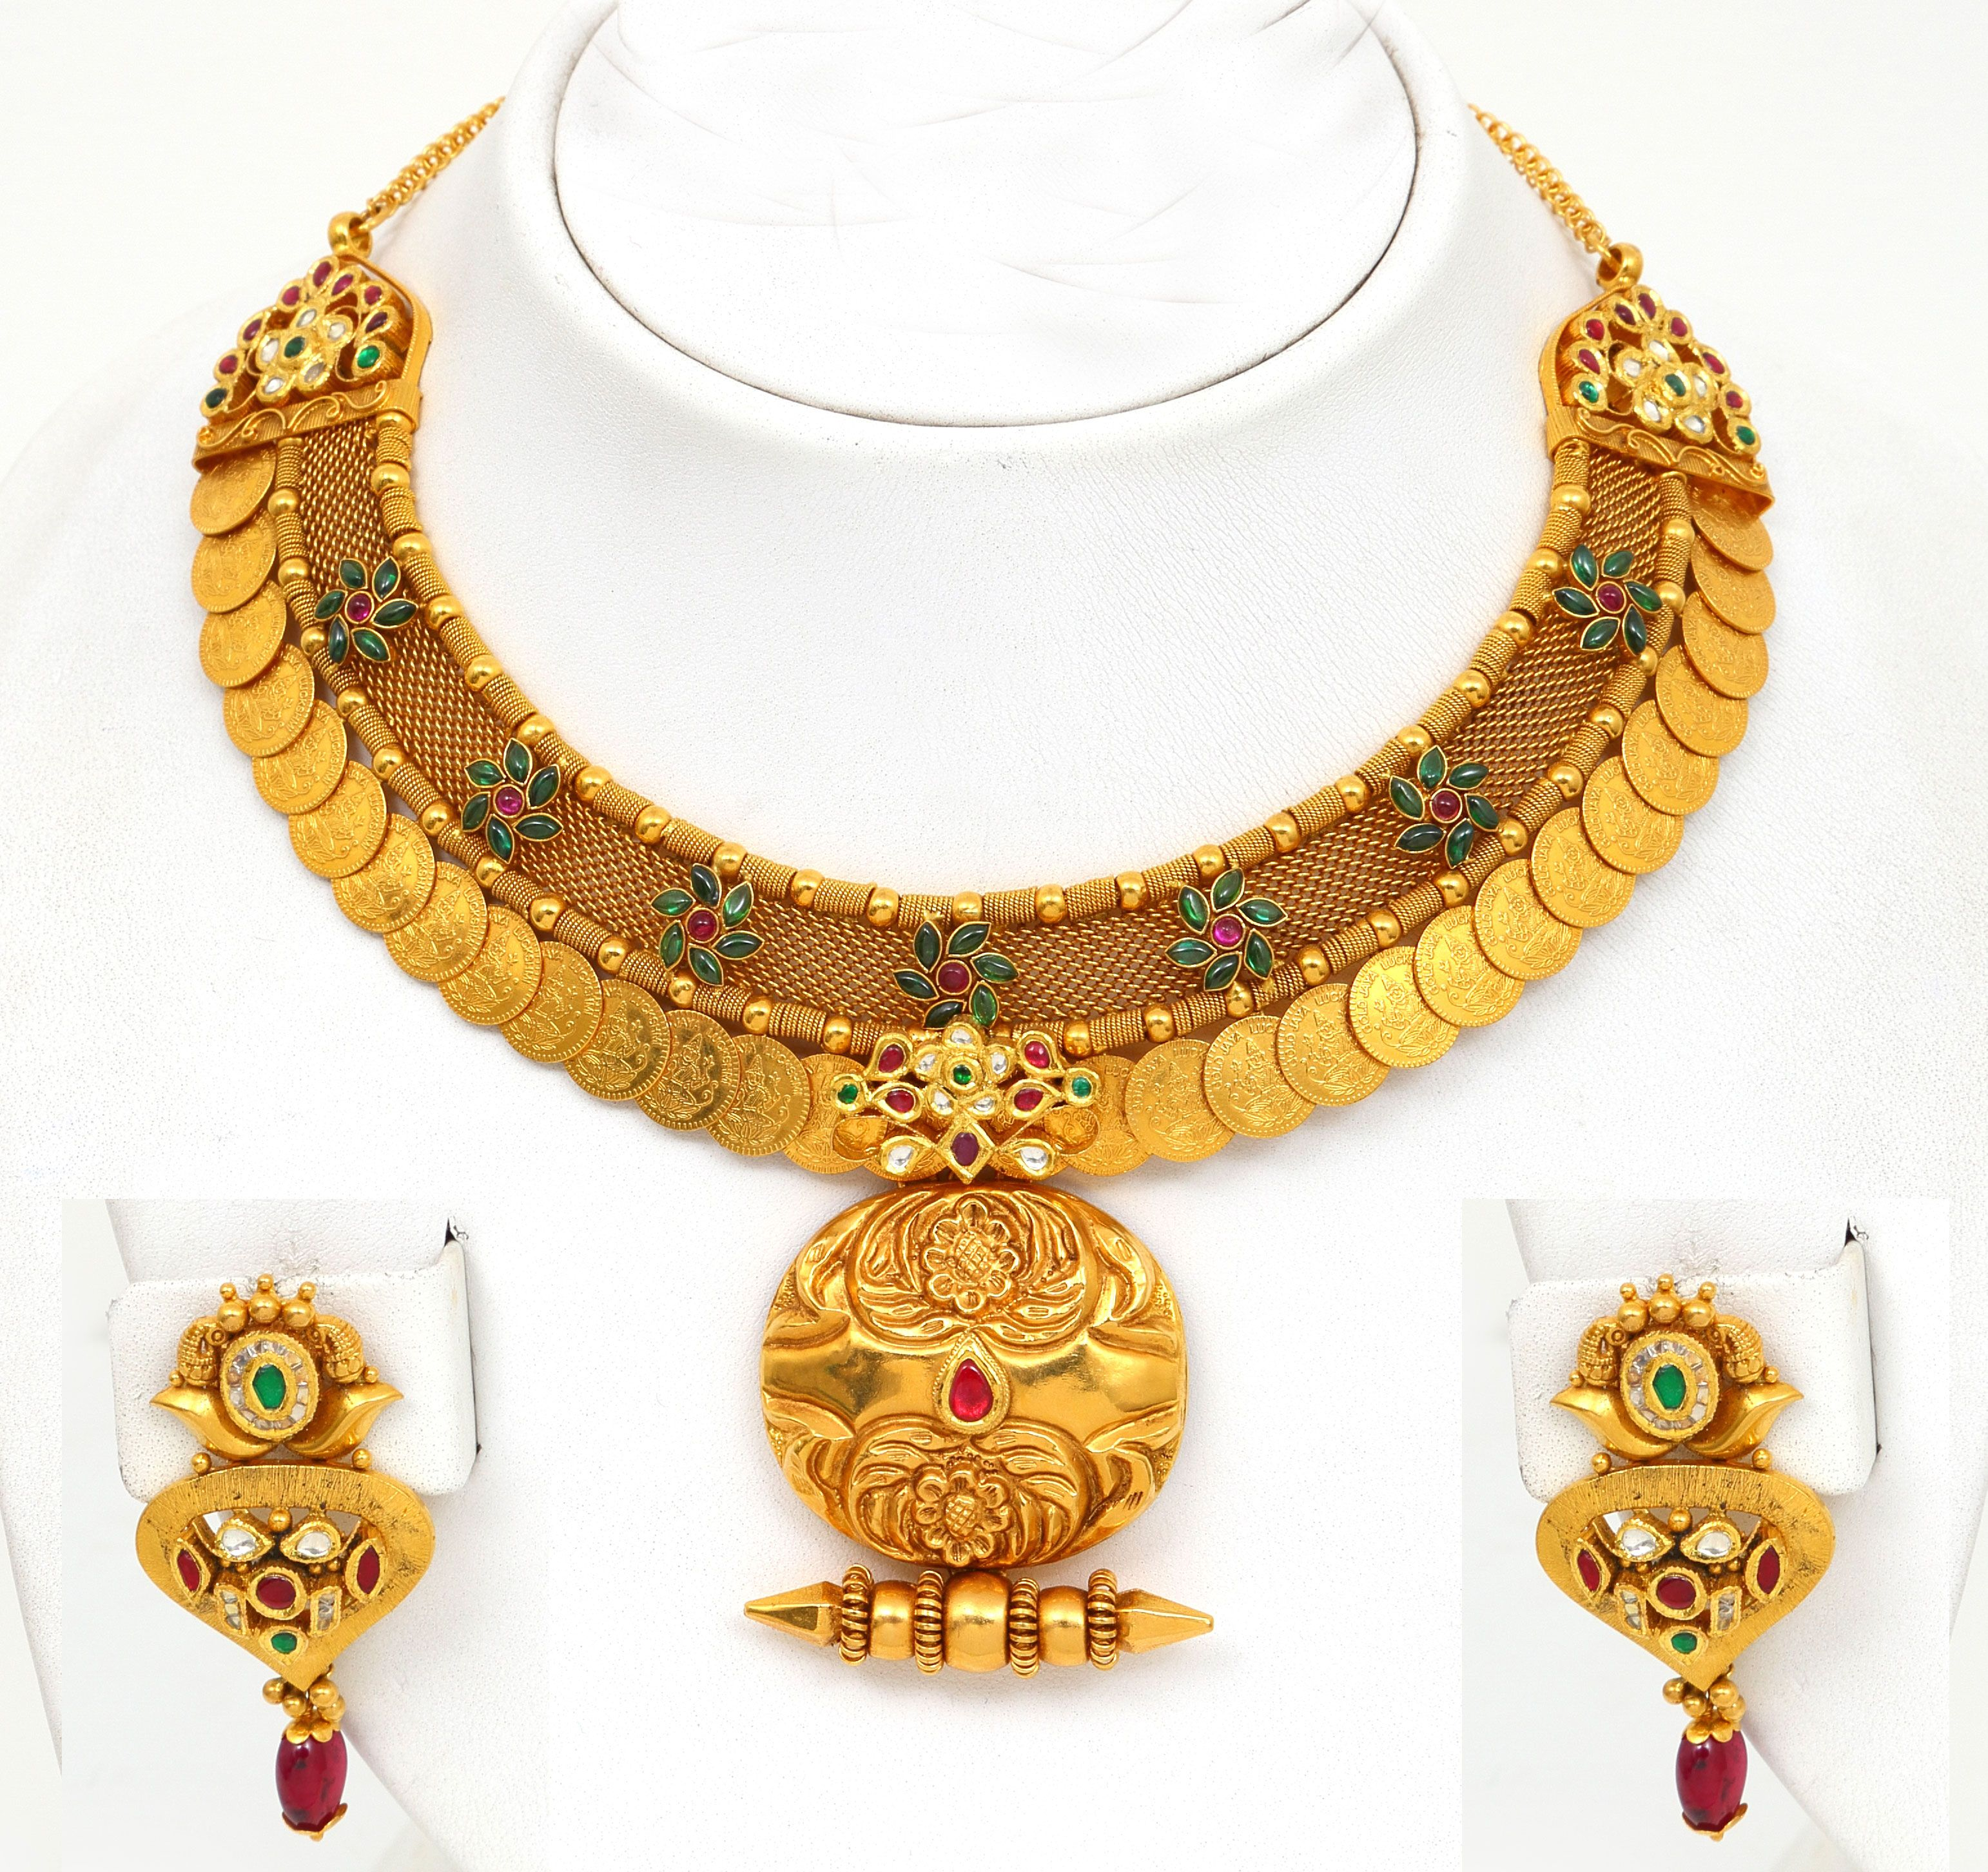 Malabar gold jewellery designs dubai - Gold Bridal Jewellery Sets Check Out The Image By Visiting The Link